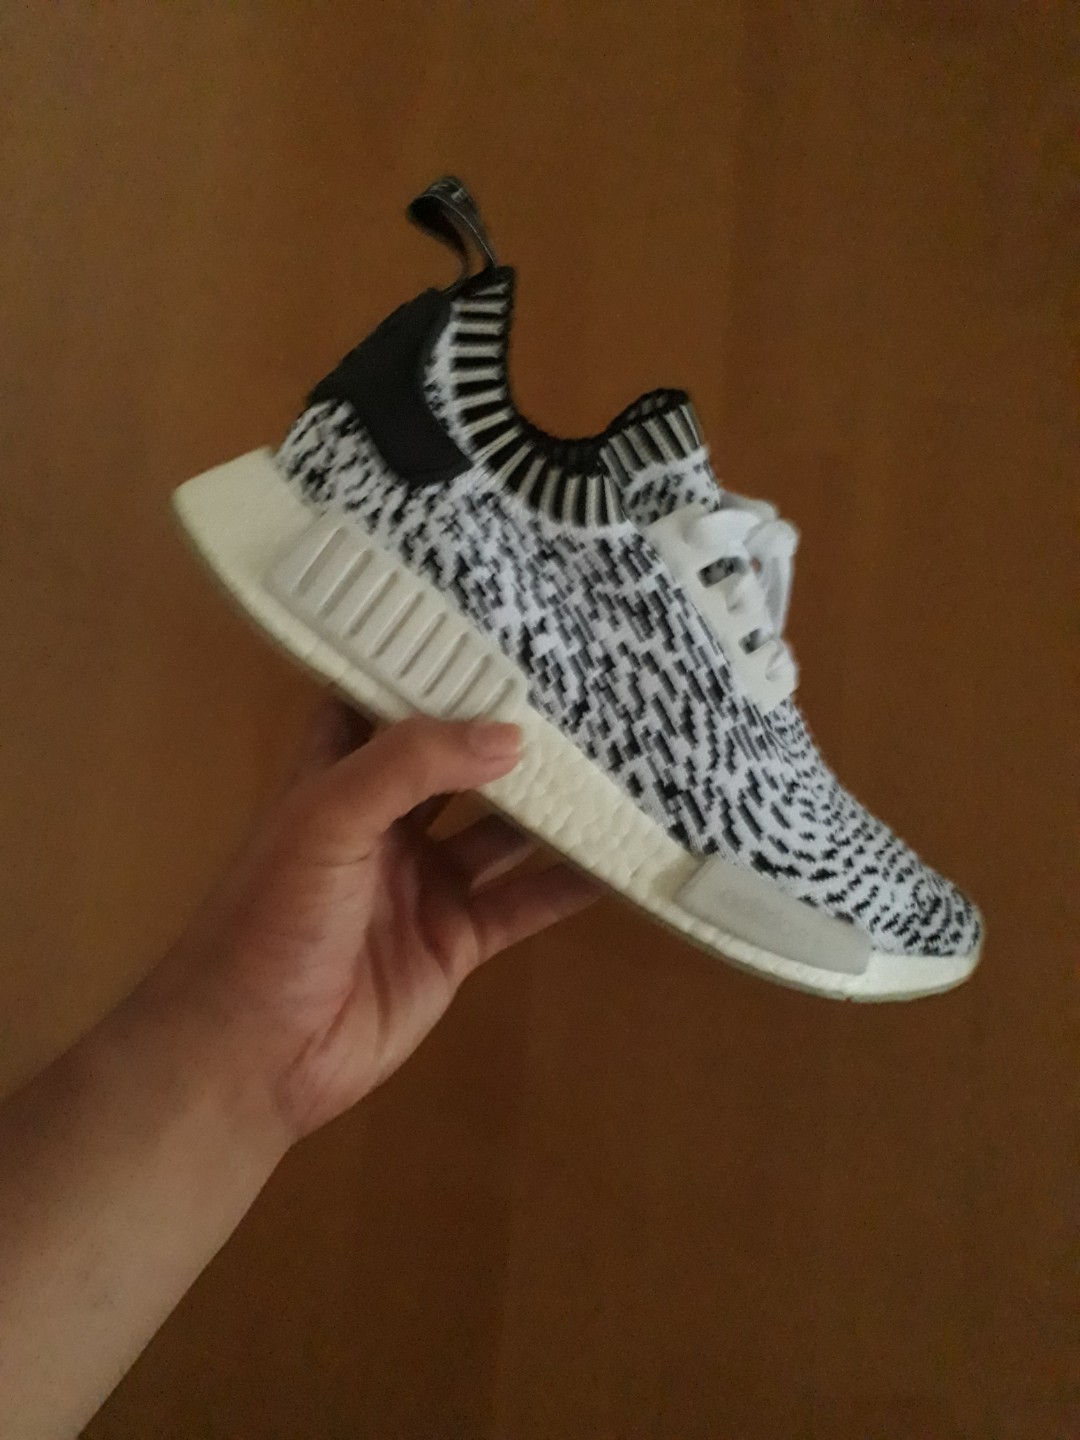 best service 6d0b5 810b0 Adidas NMD sashiko white, Men s Fashion, Footwear, Sneakers on Carousell